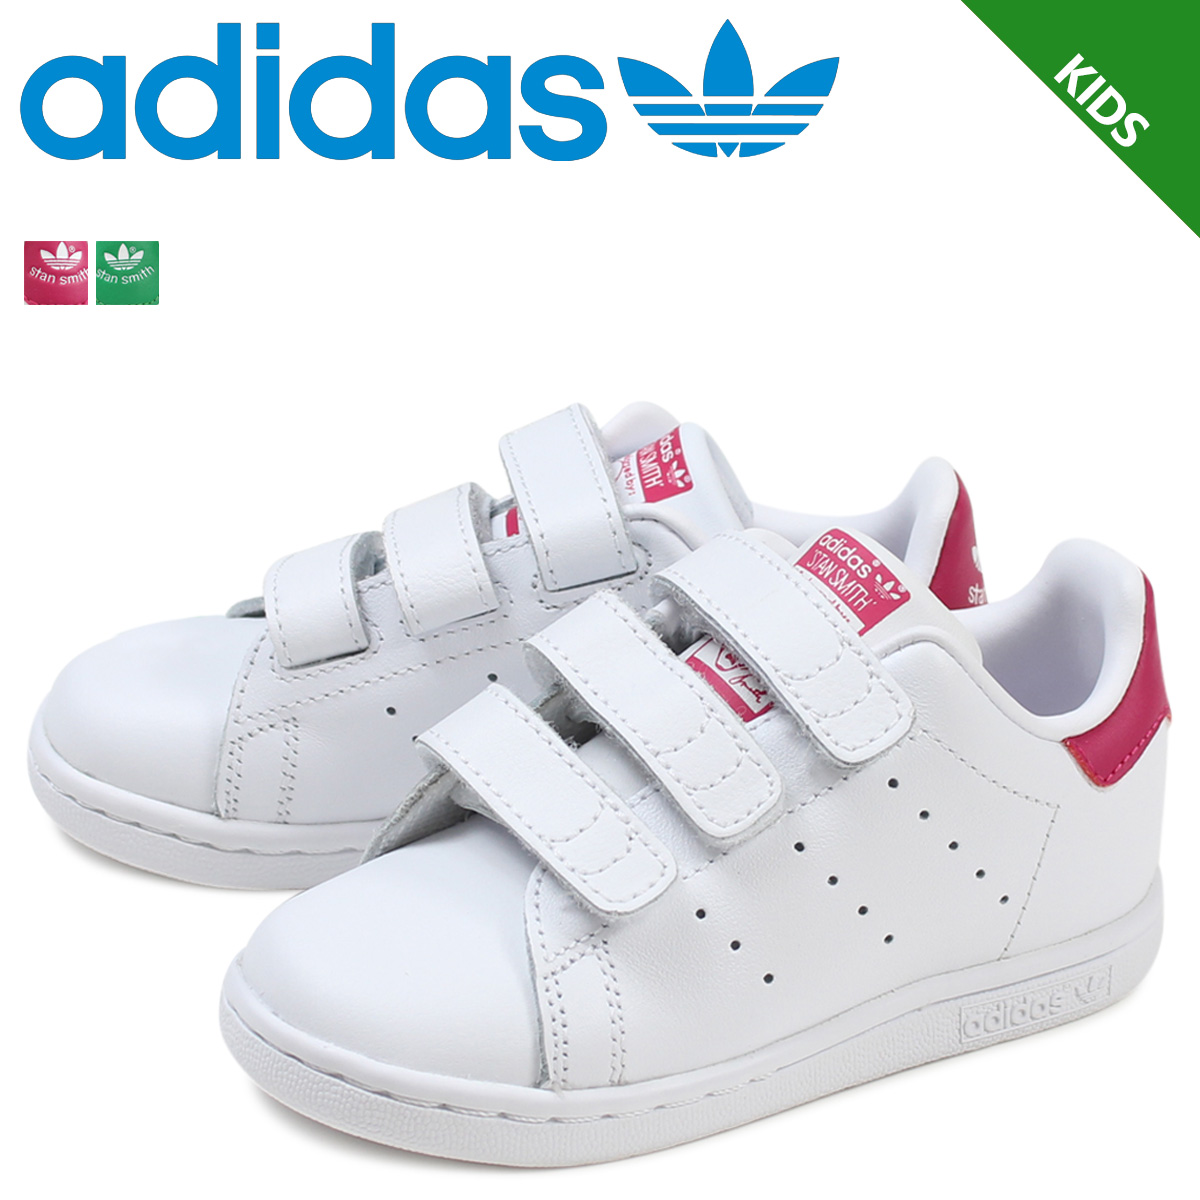 adidas kids shoes stan smith